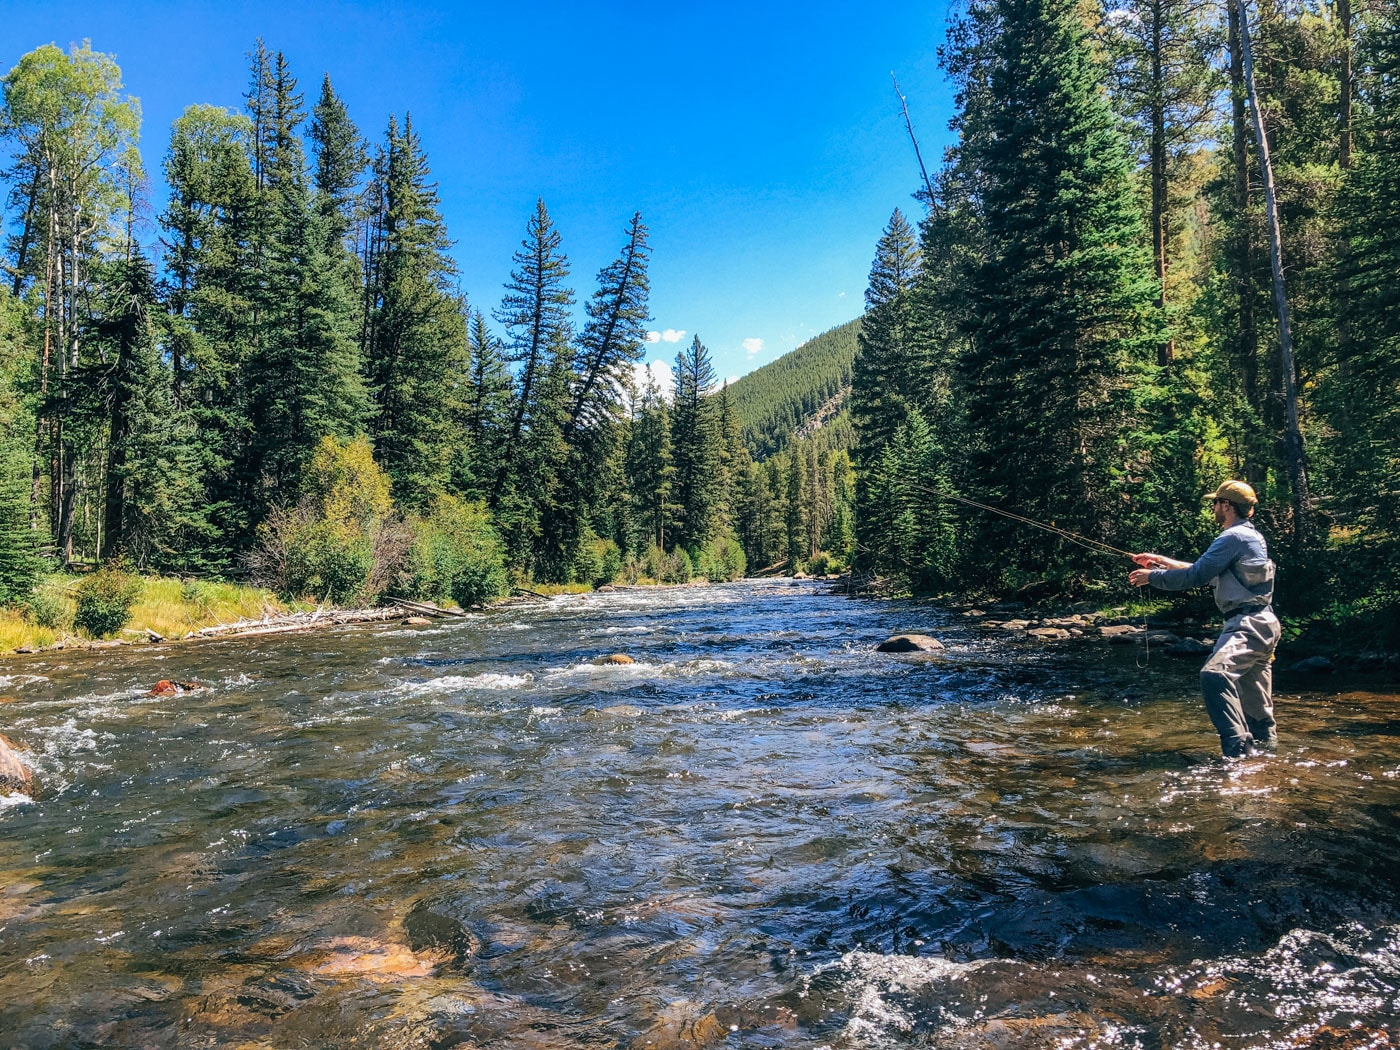 Fly Fishing the Taylor River, Gunnison Colorado